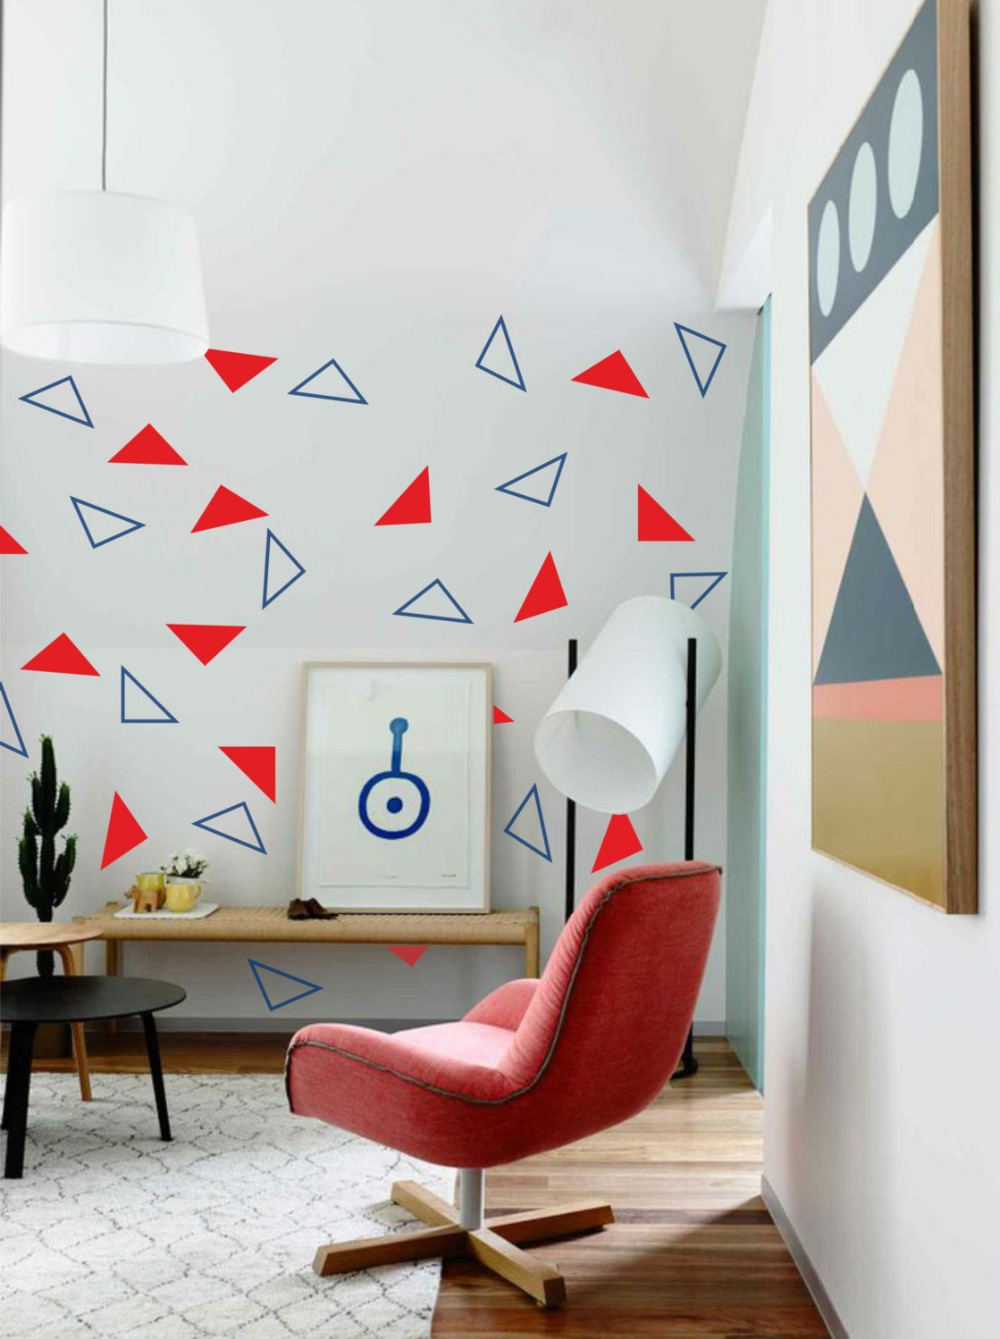 Captivating 24pcs(solid And Hollow) Triangles Abstract Geometric Wall Sticker Office  Decor,free Ship In Wall Stickers From Home U0026 Garden On Aliexpress.com |  Alibaba ...